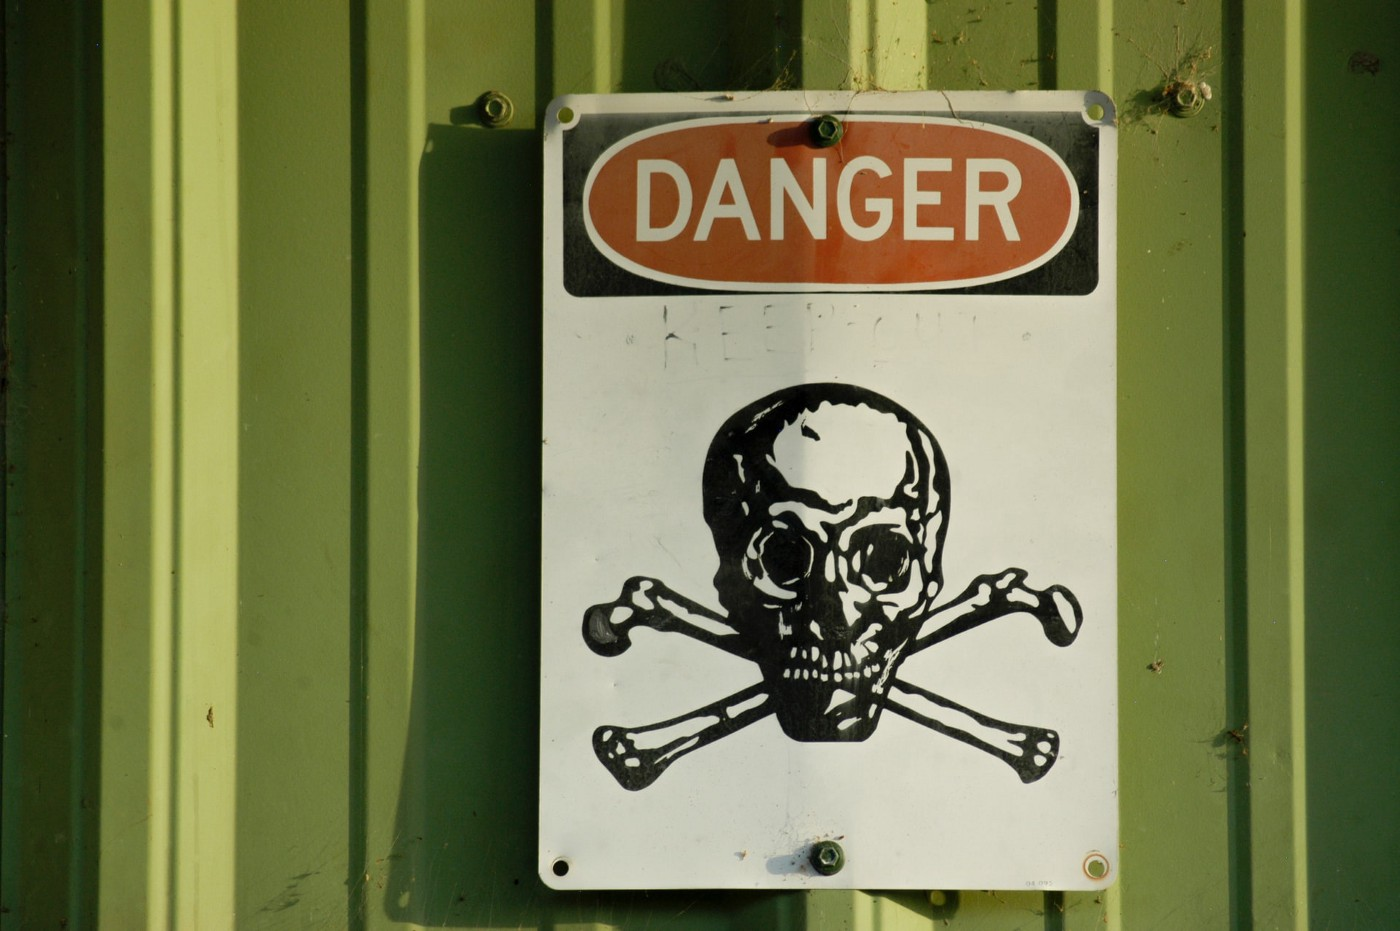 photo of danger sign with skull and cross bones